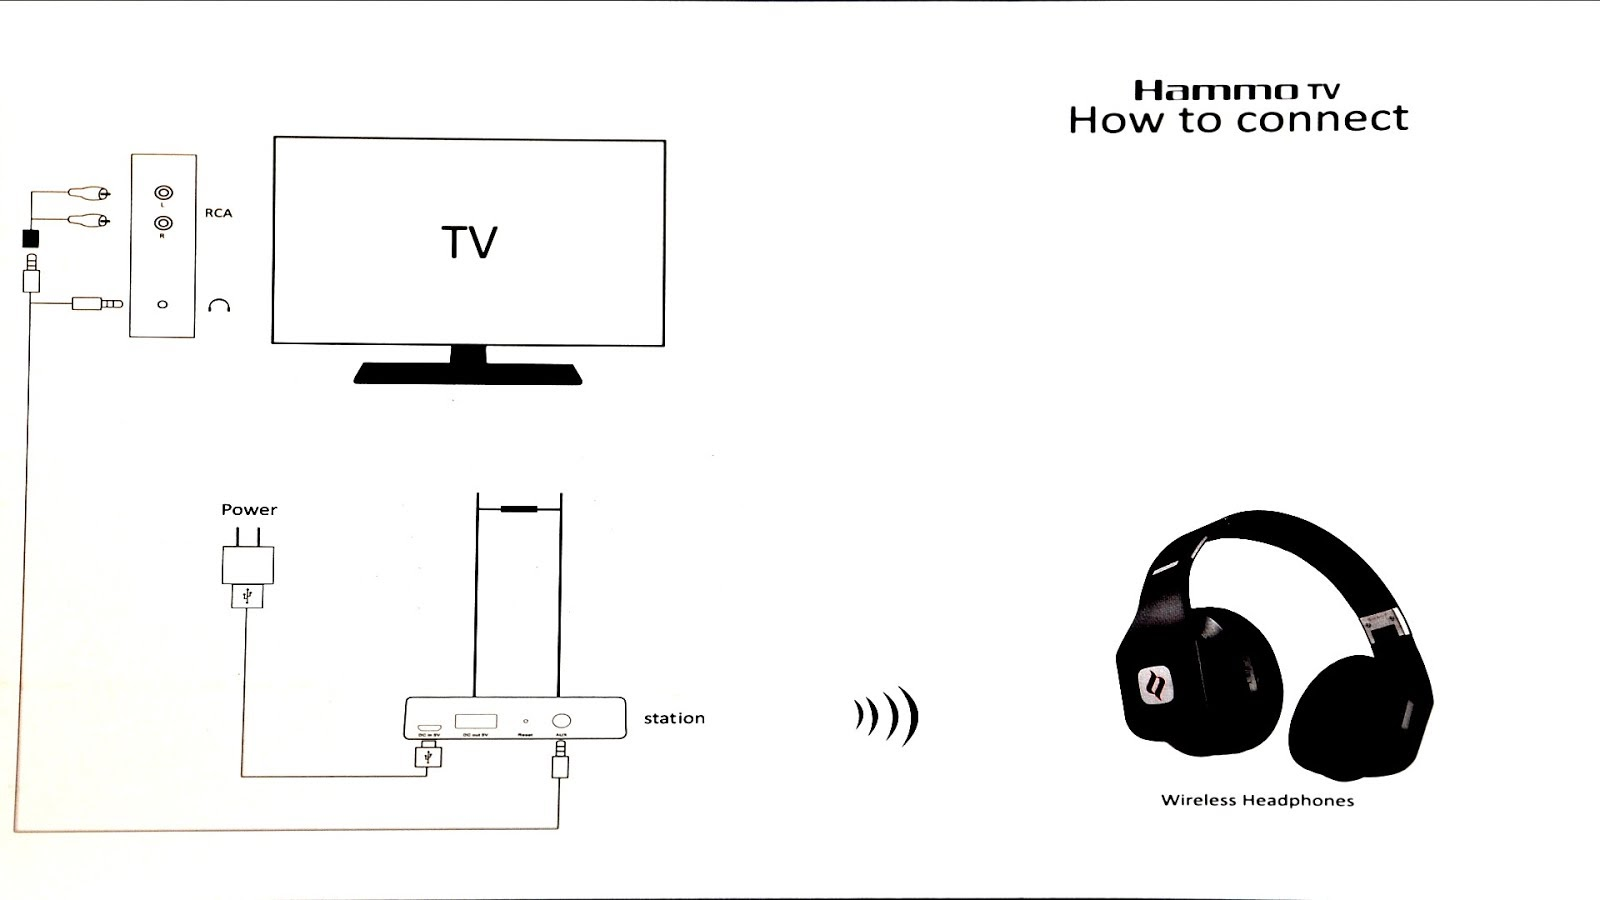 How To Connect Headphones To Tv Connect Choices